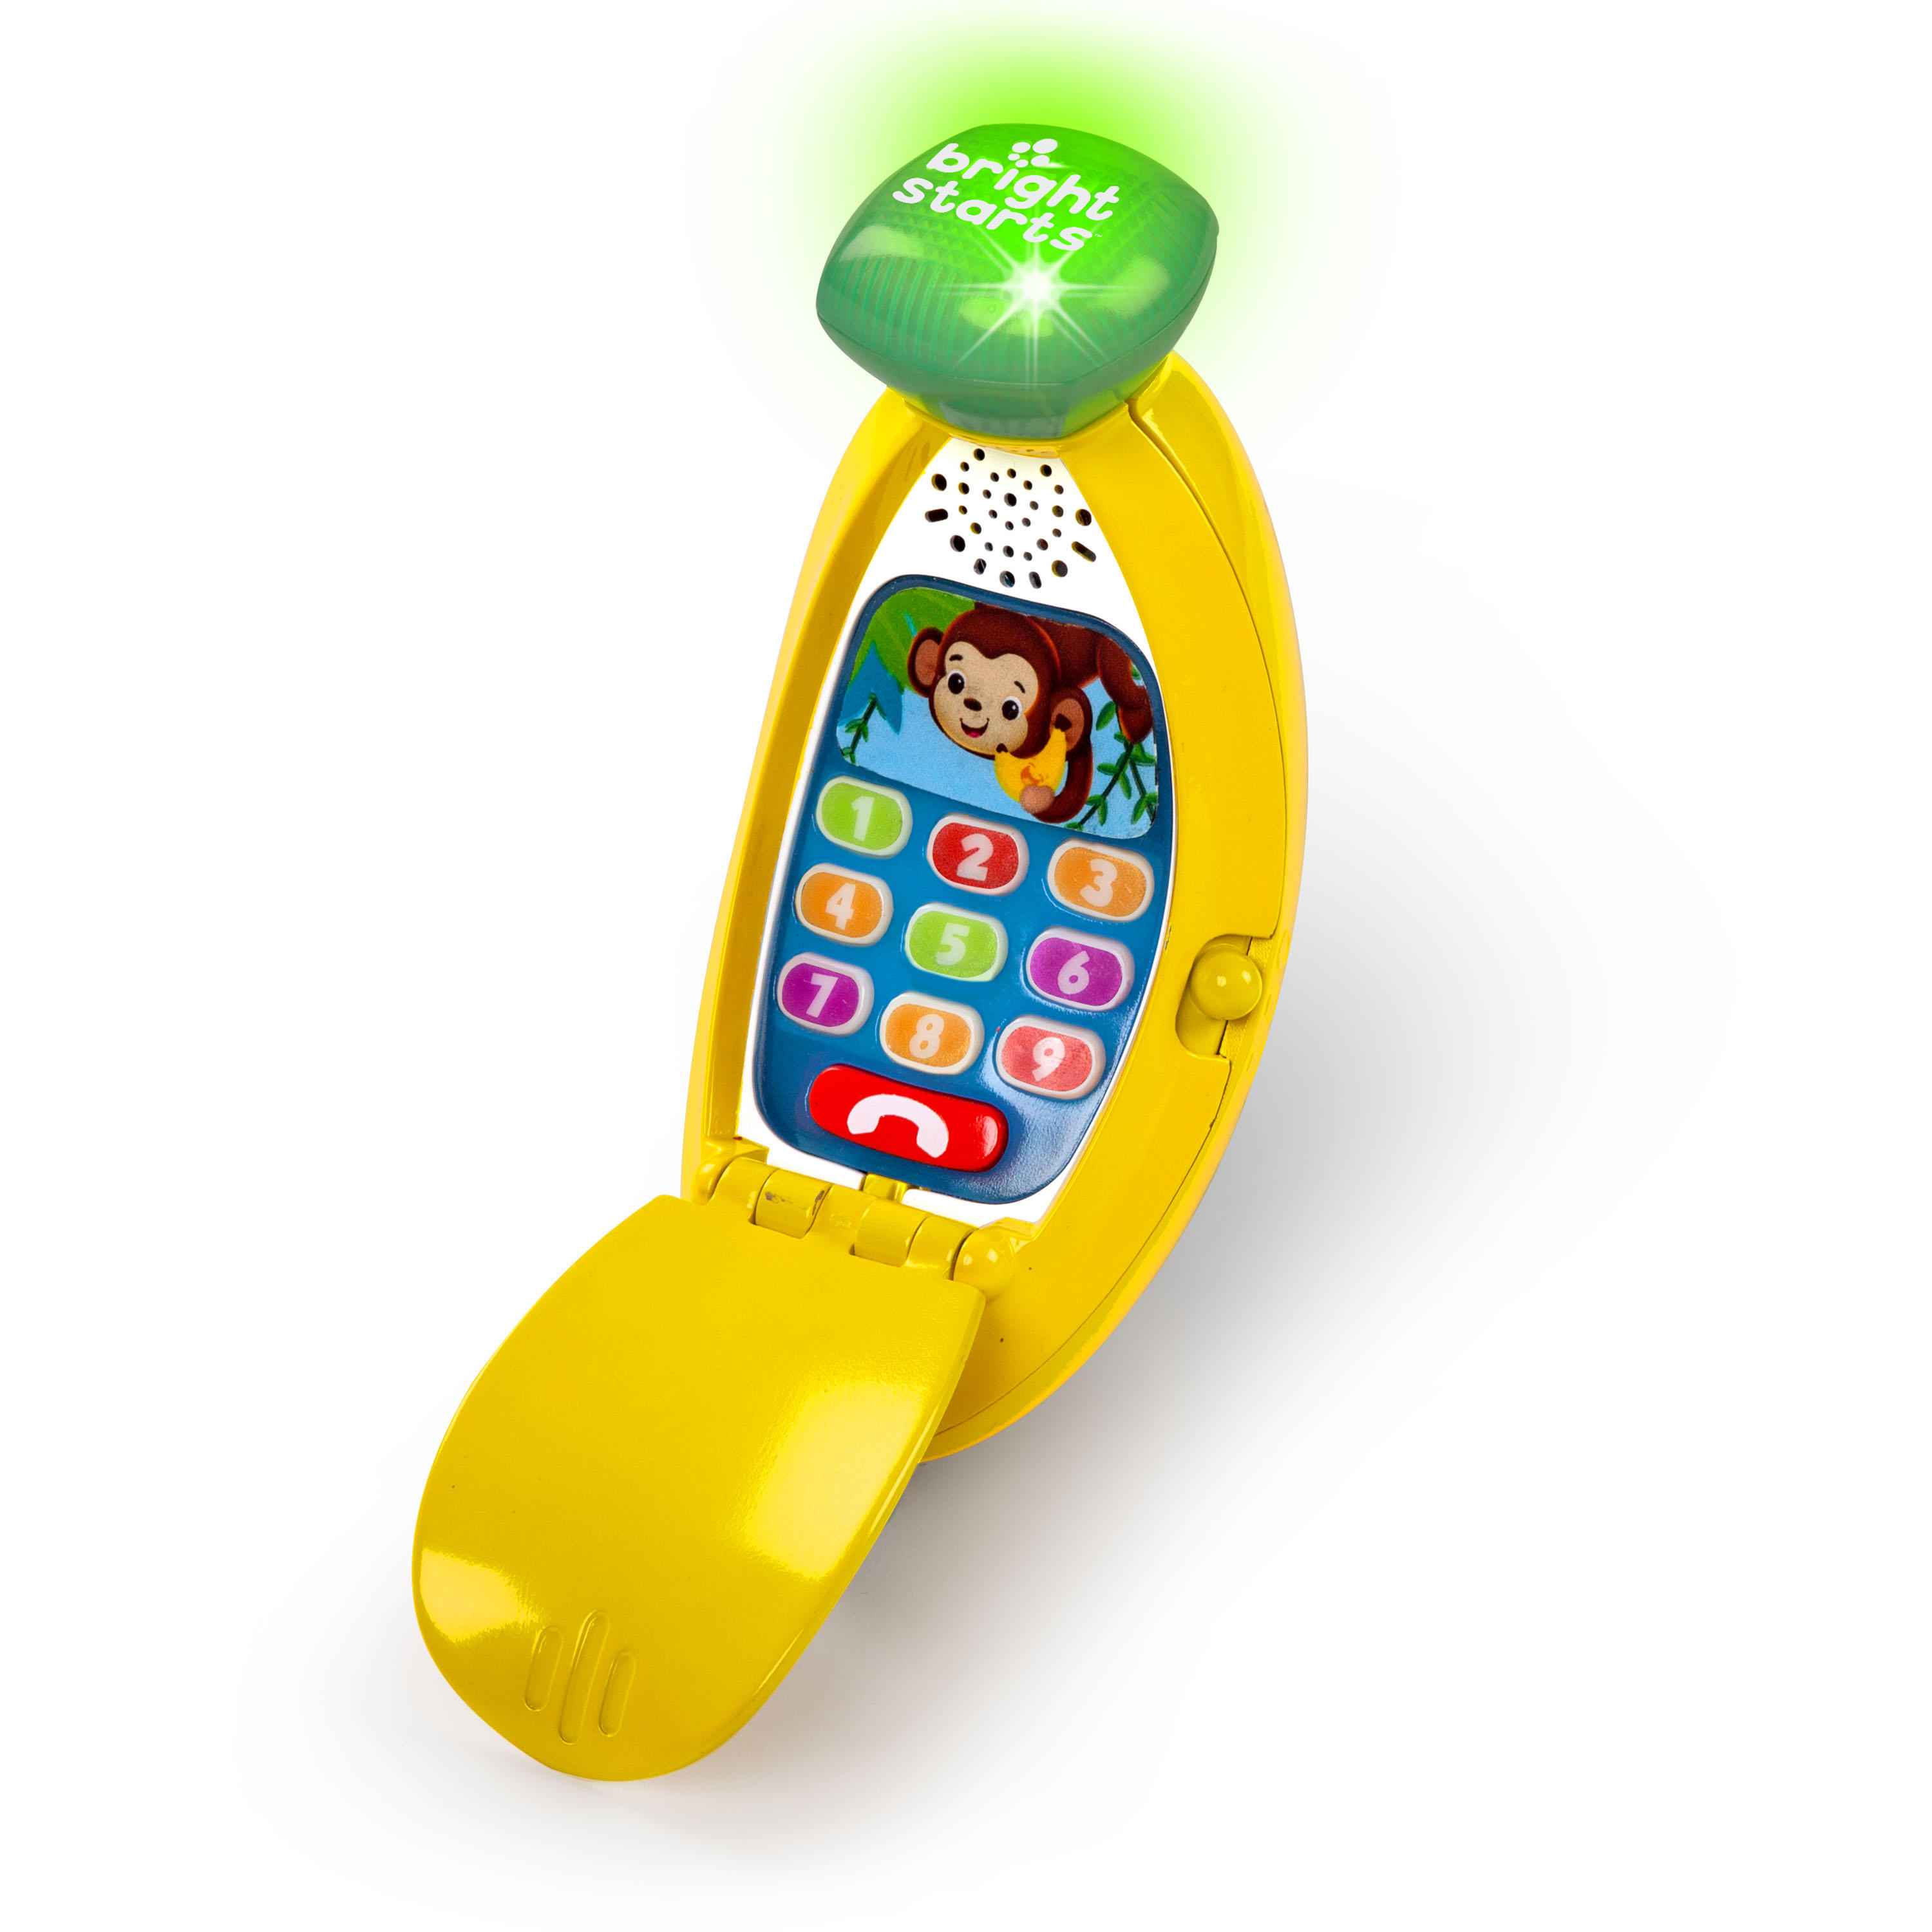 Bright Starts Giggle & Ring Phone by Bright Starts